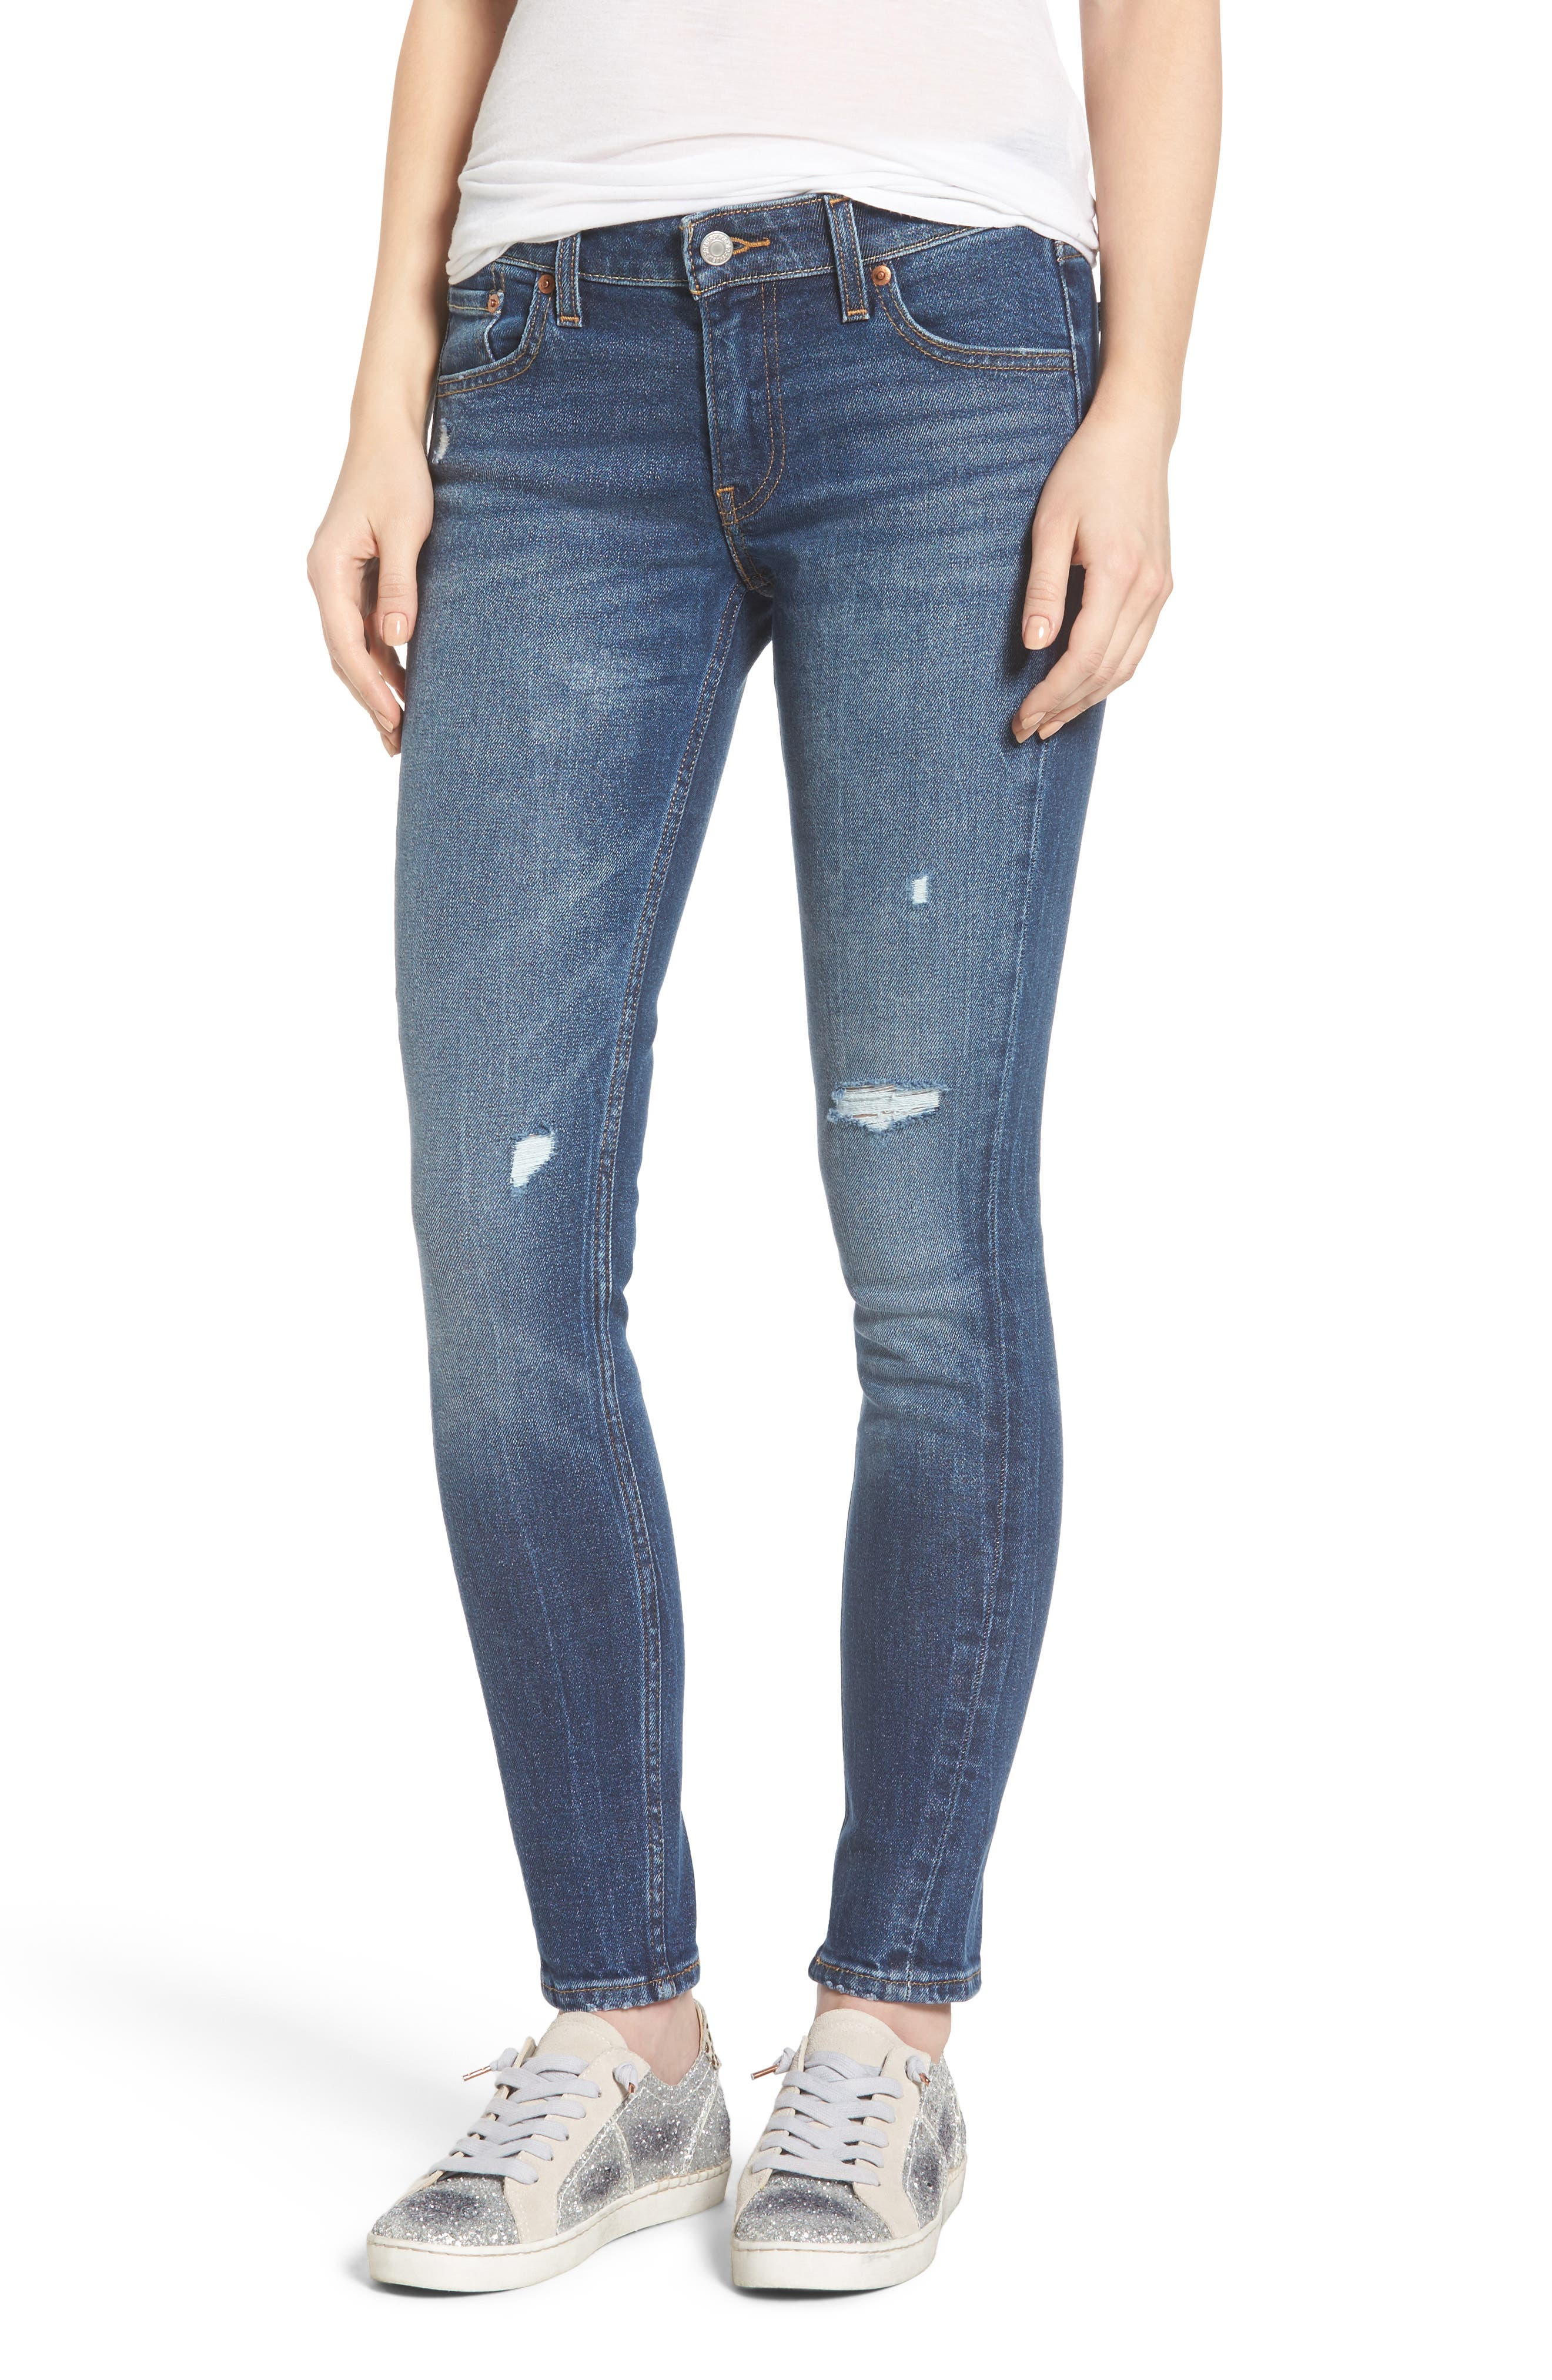 711 Ripped Skinny Jeans,                             Main thumbnail 1, color,                             421